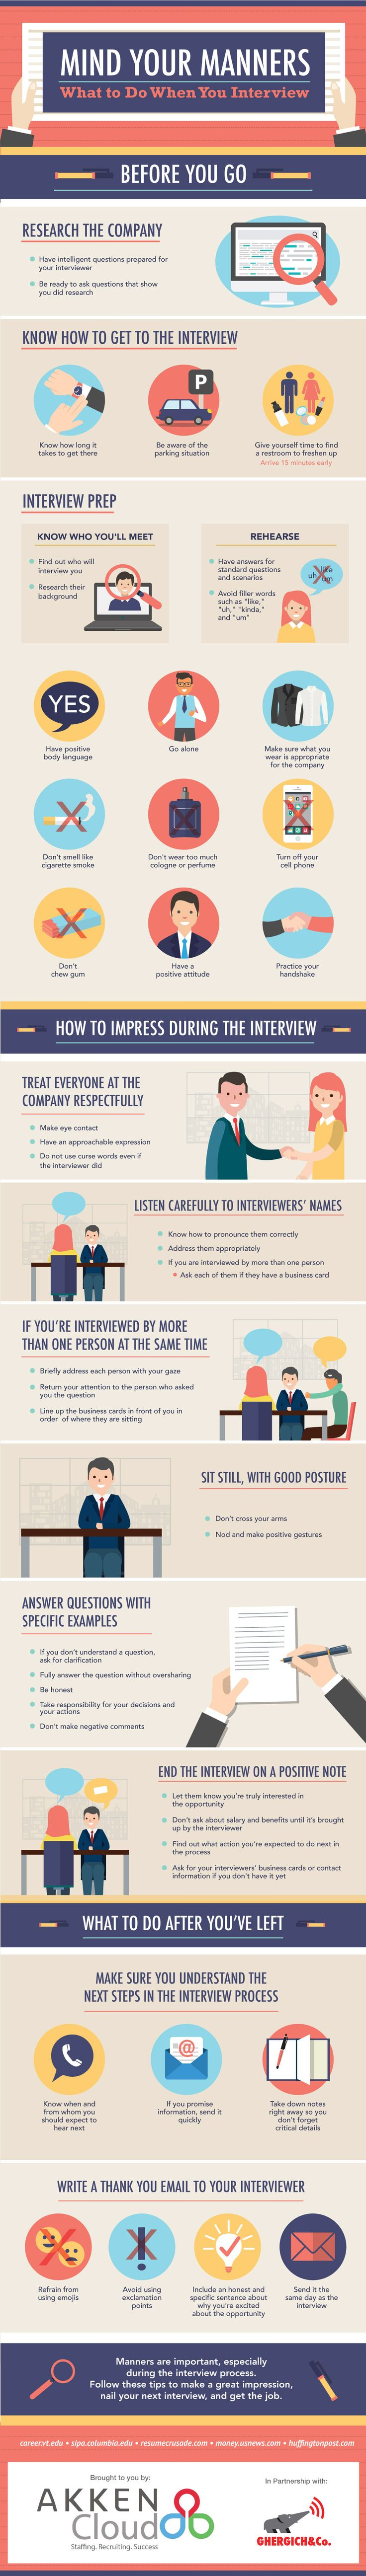 manners are important especially during the interview process follow these tips to make a - The Interview Process Job Interview Process 4 Interview Stages